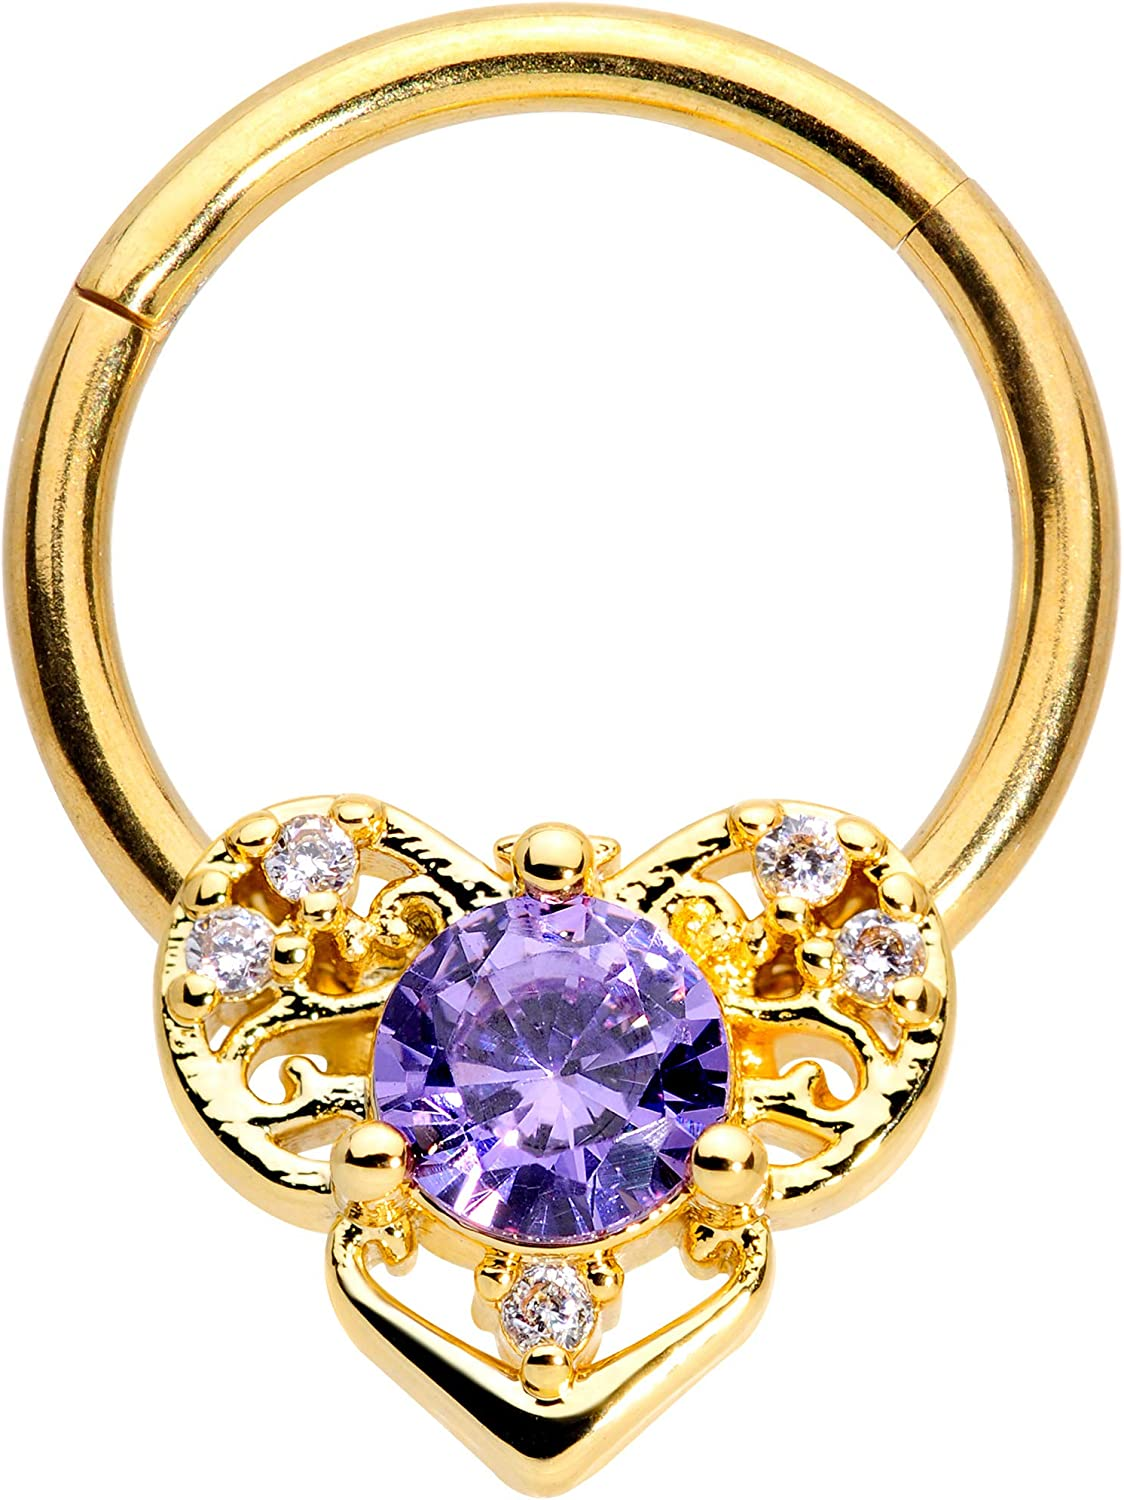 Body Candy 16G PVD Steel Segment Ring Seamless Cartilage Septum Purple Accent Abstract Heart Nose Hoop 3/8